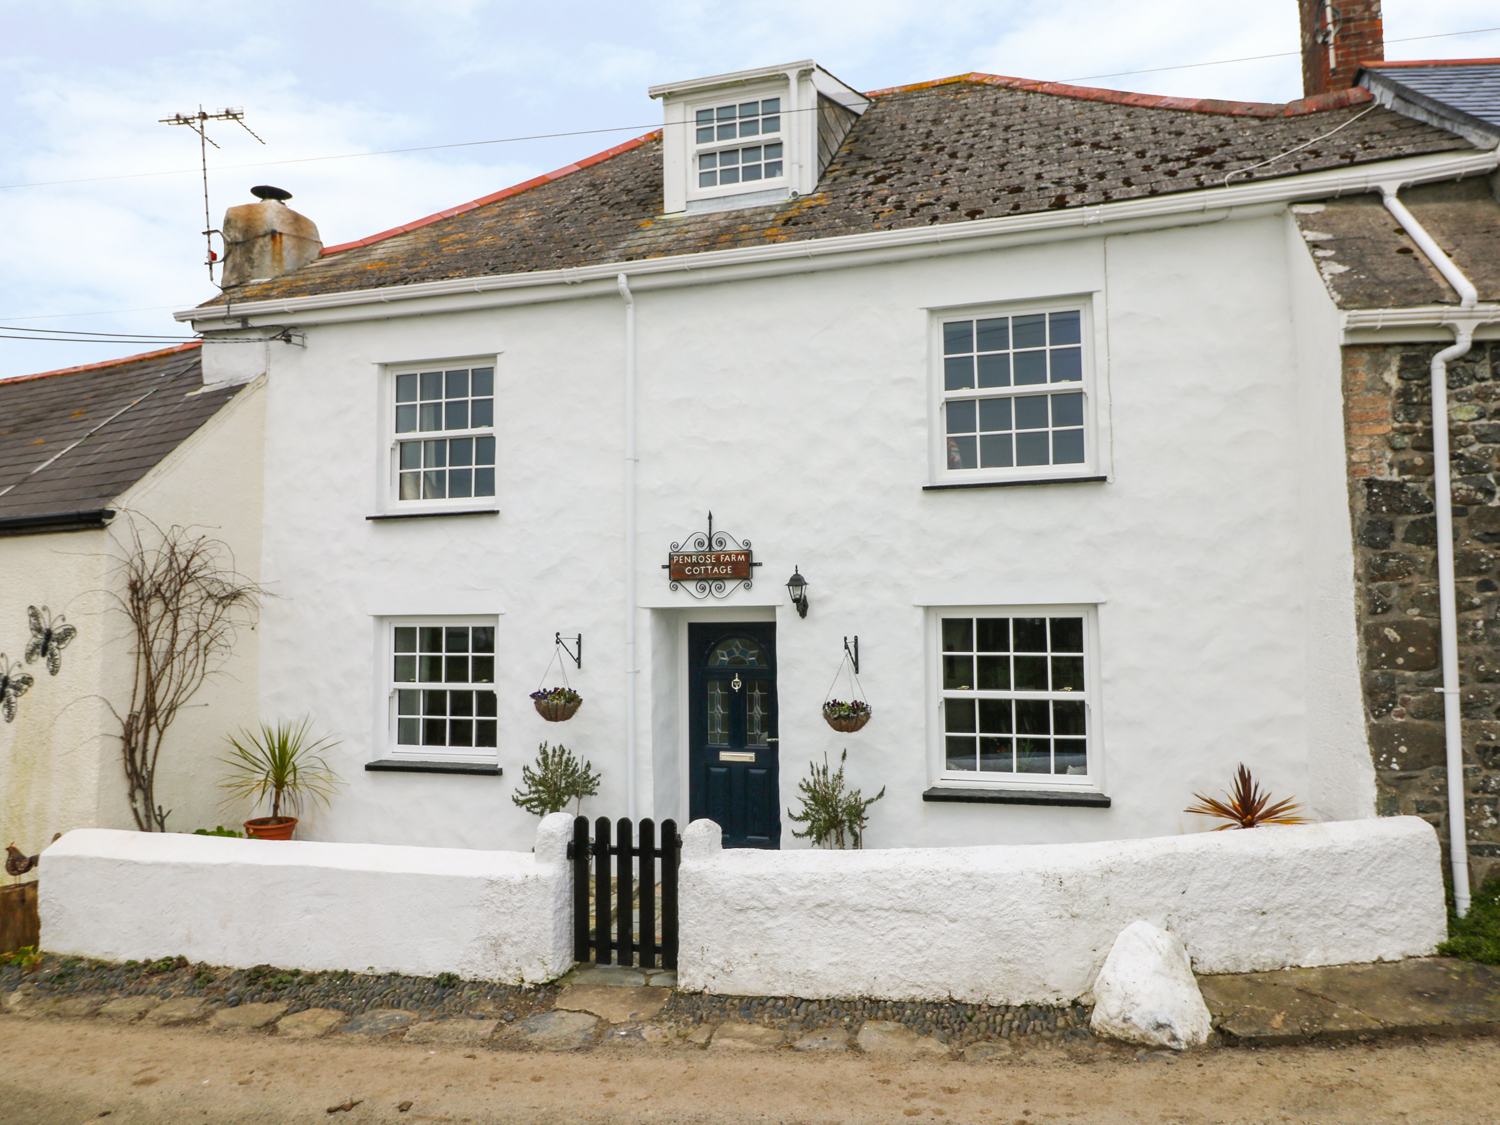 4 bedroom Cottage for rent in Helston